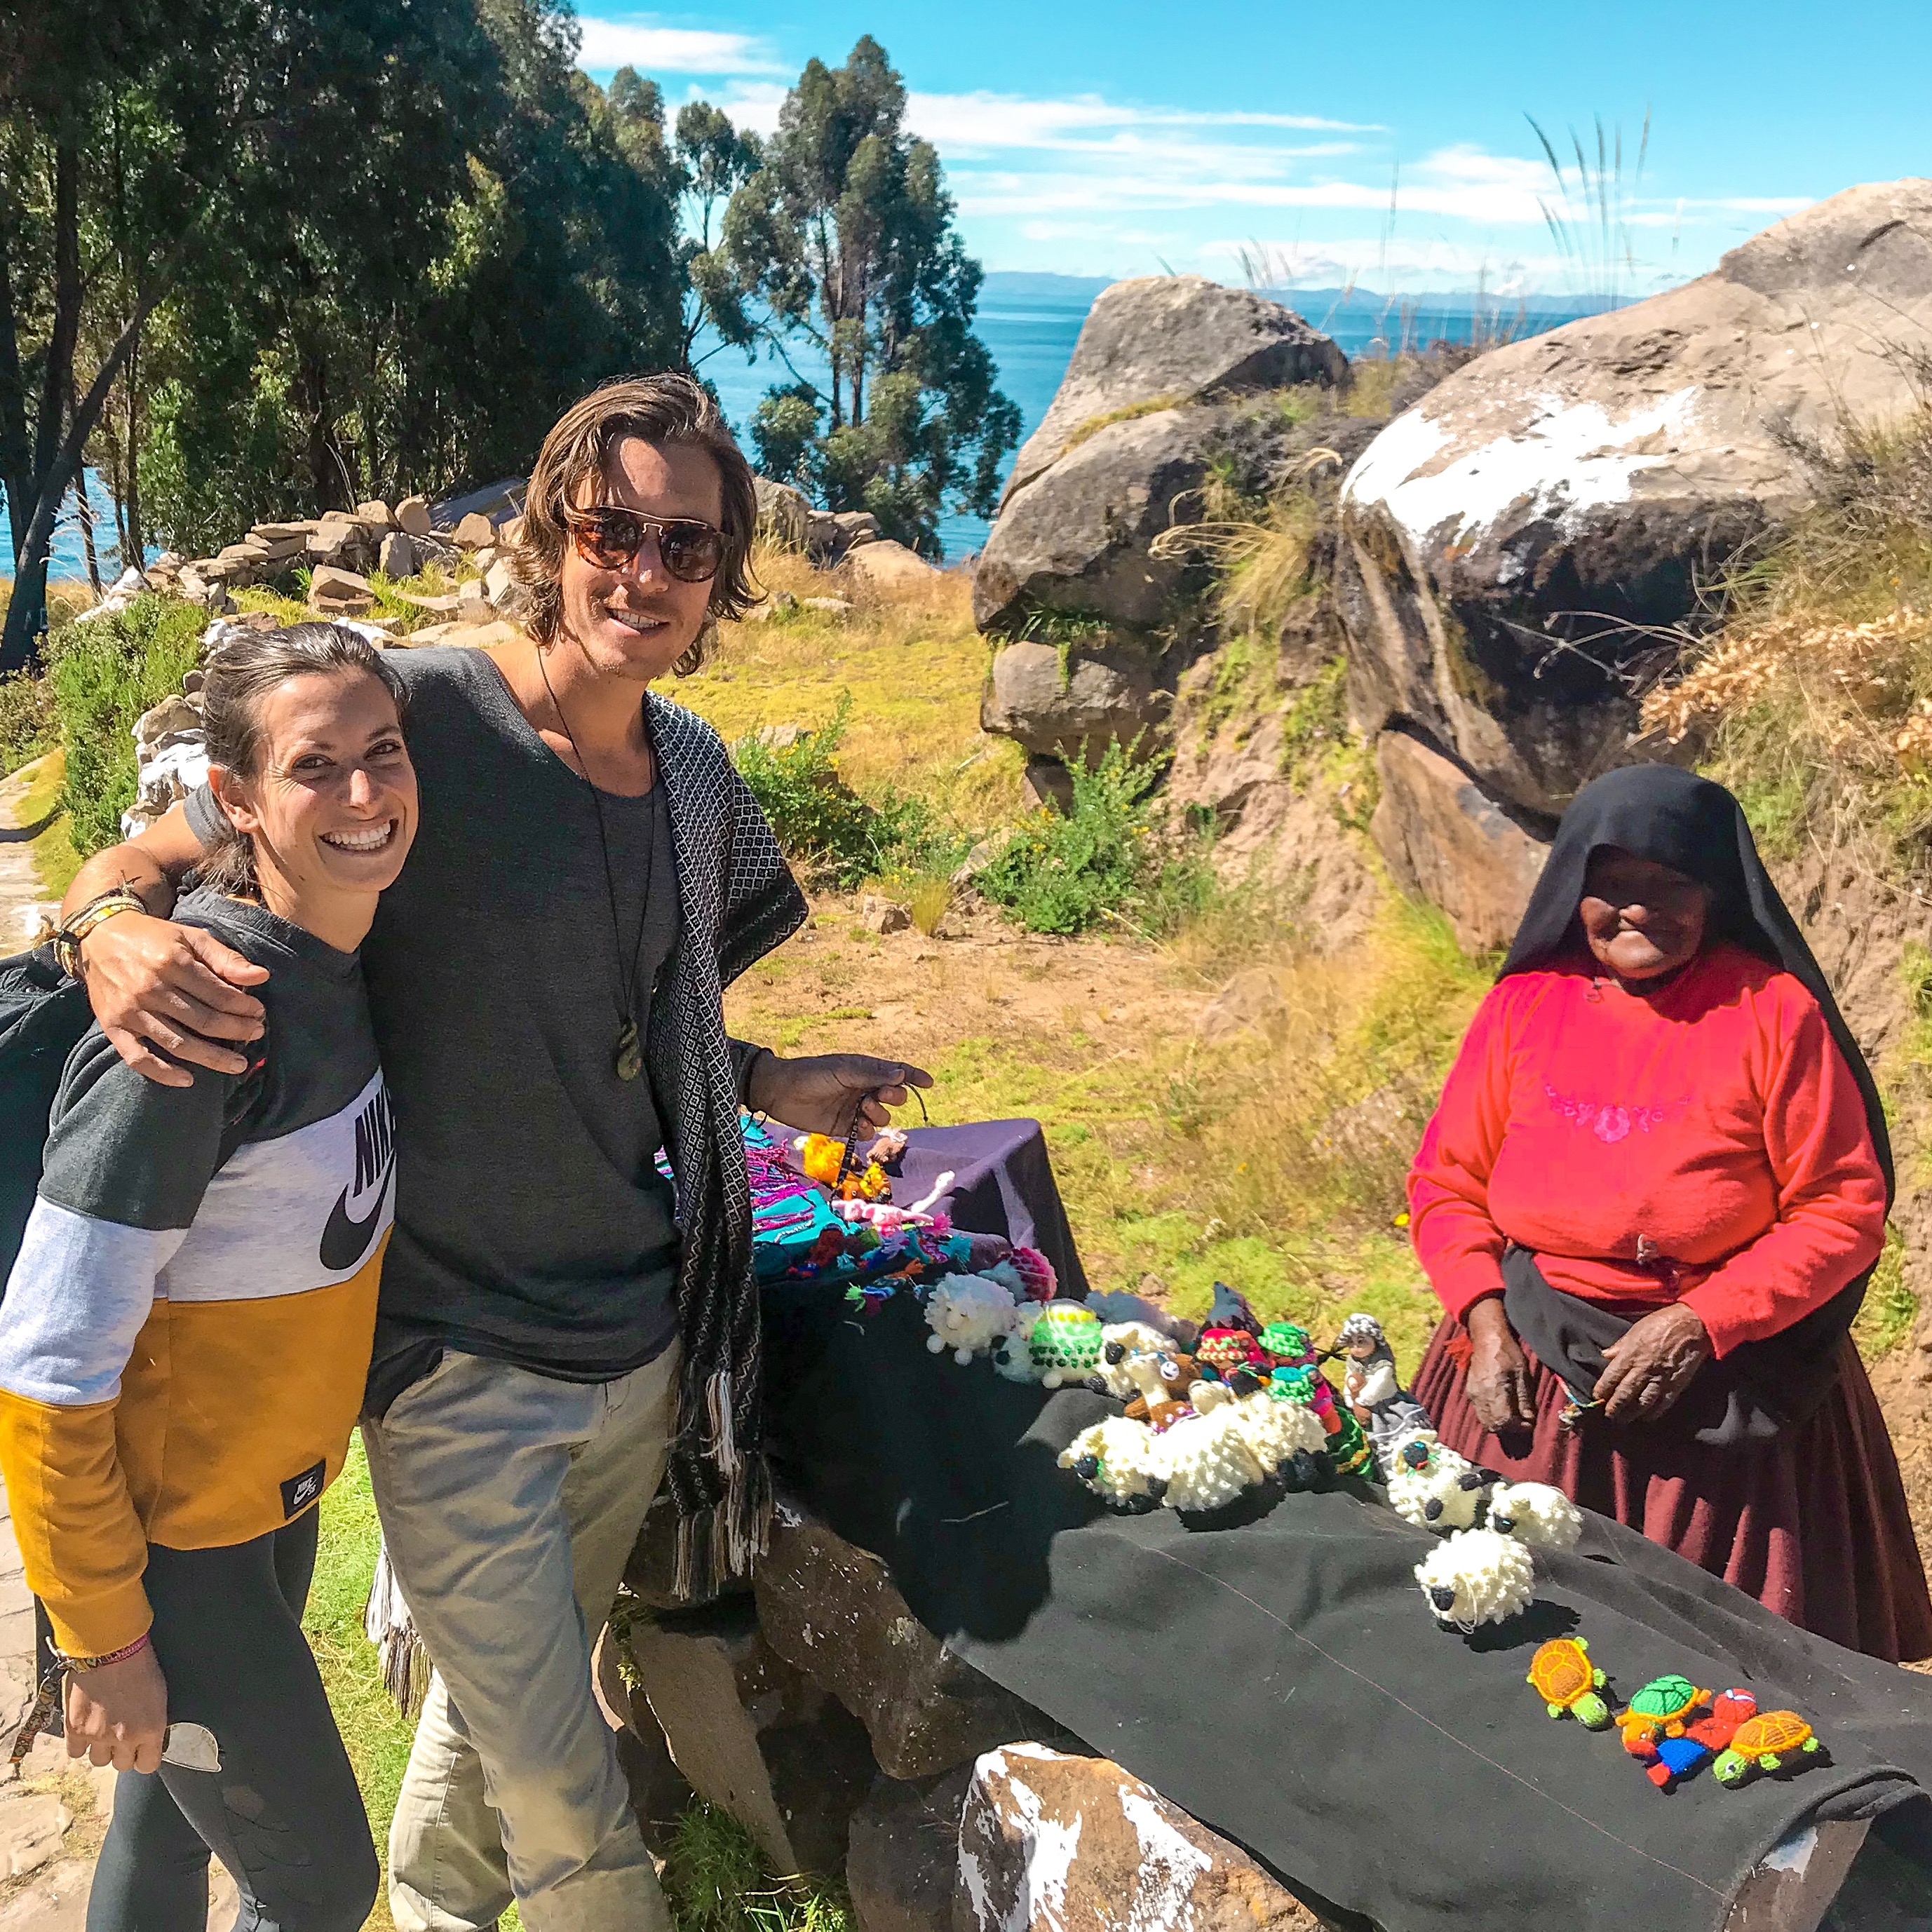 Taquileños woman on Taquile Island, Lake Titicaca Peru, selling her artisan goods. Peruvian culture preservation.